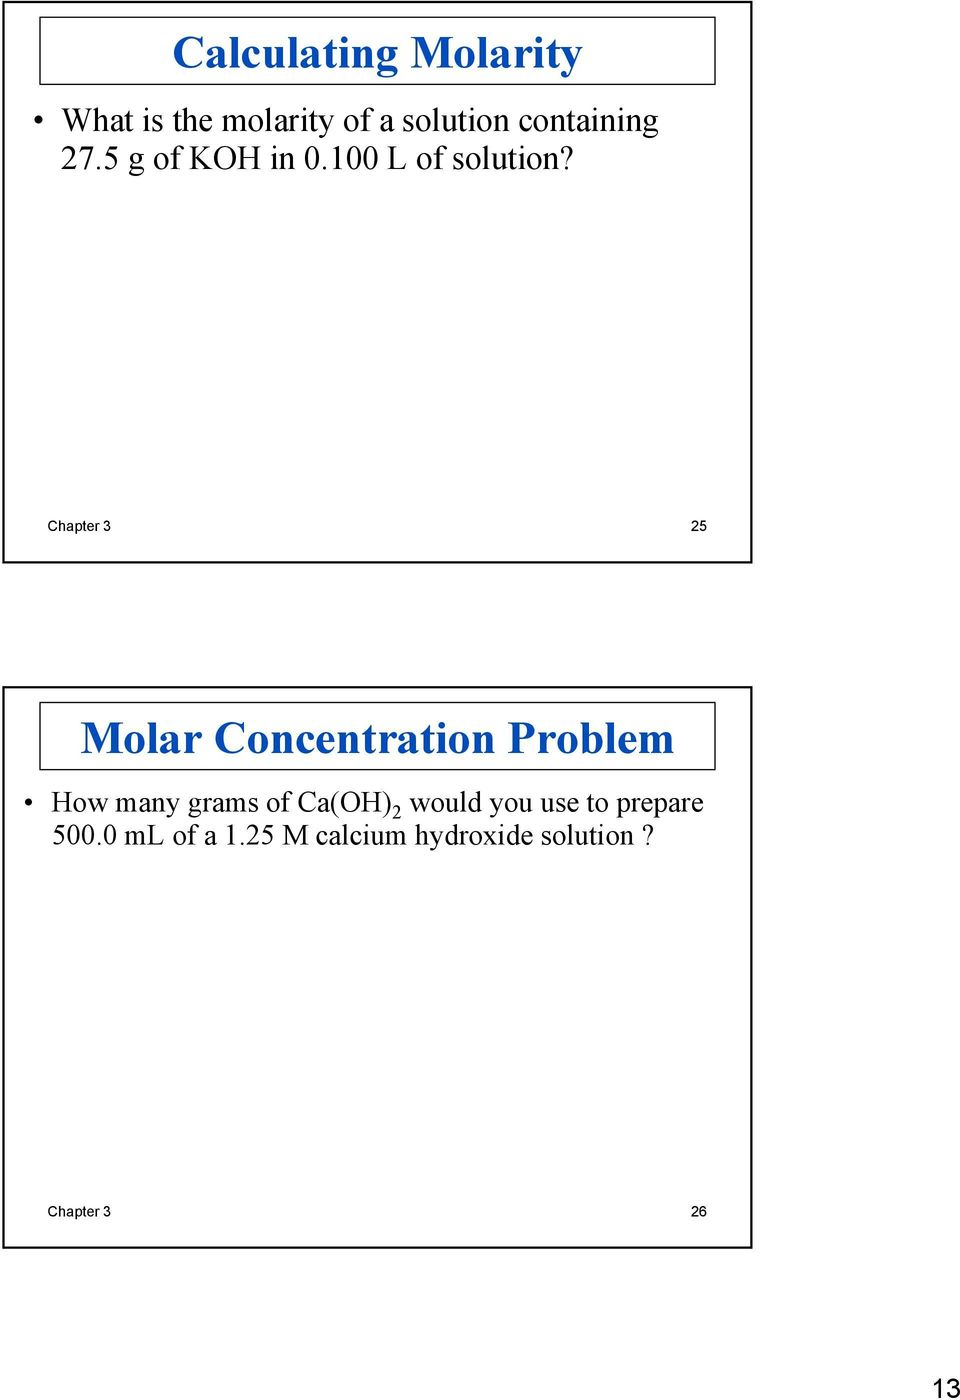 moles of solute liters of solution = M Chapter 3 25 Molar Concentration Problem How many grams of Ca(OH) 2 would you use to prepare 500.0 ml of a 1.25 M calcium hydroxide solution?